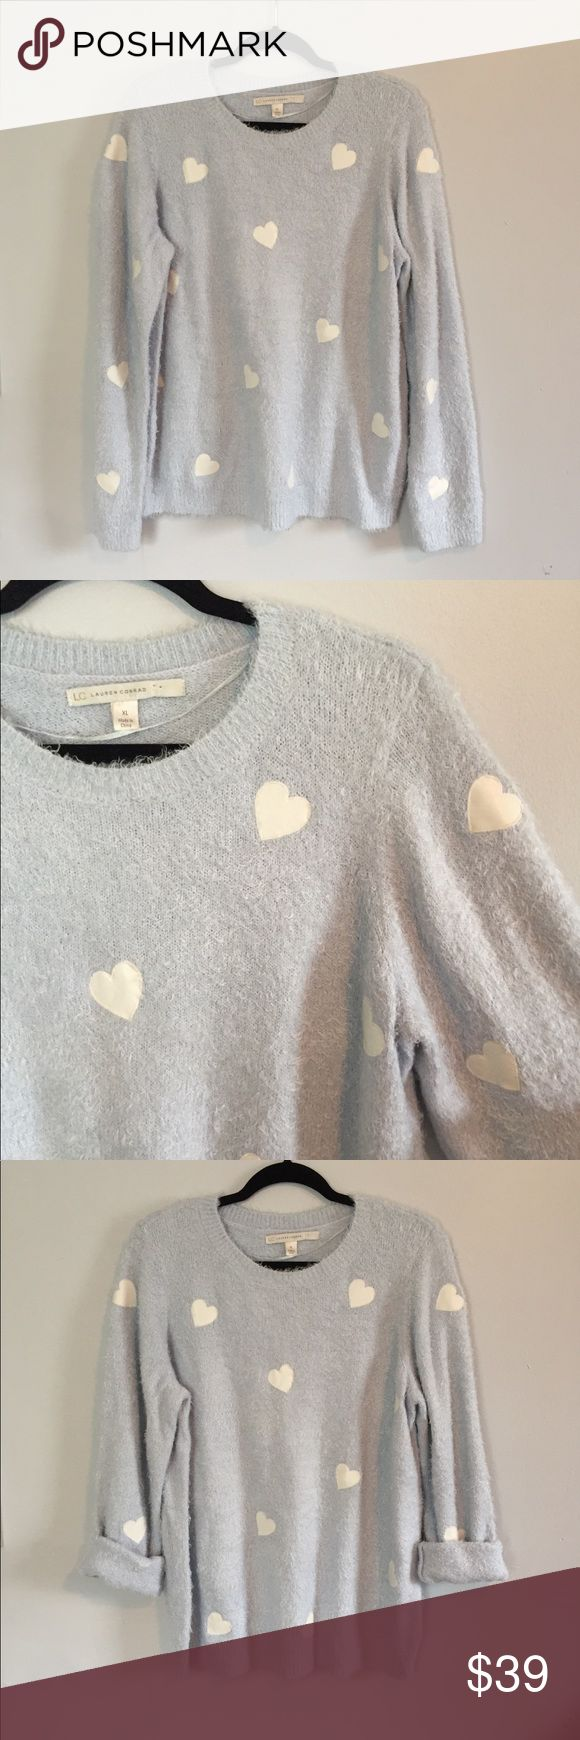 [Lauren Conrad] baby blue soft sweater This sweater is so SOFT!! Perfect for wearing oversized in the fall and winter! No modeling or trades. (A-14) Sweaters